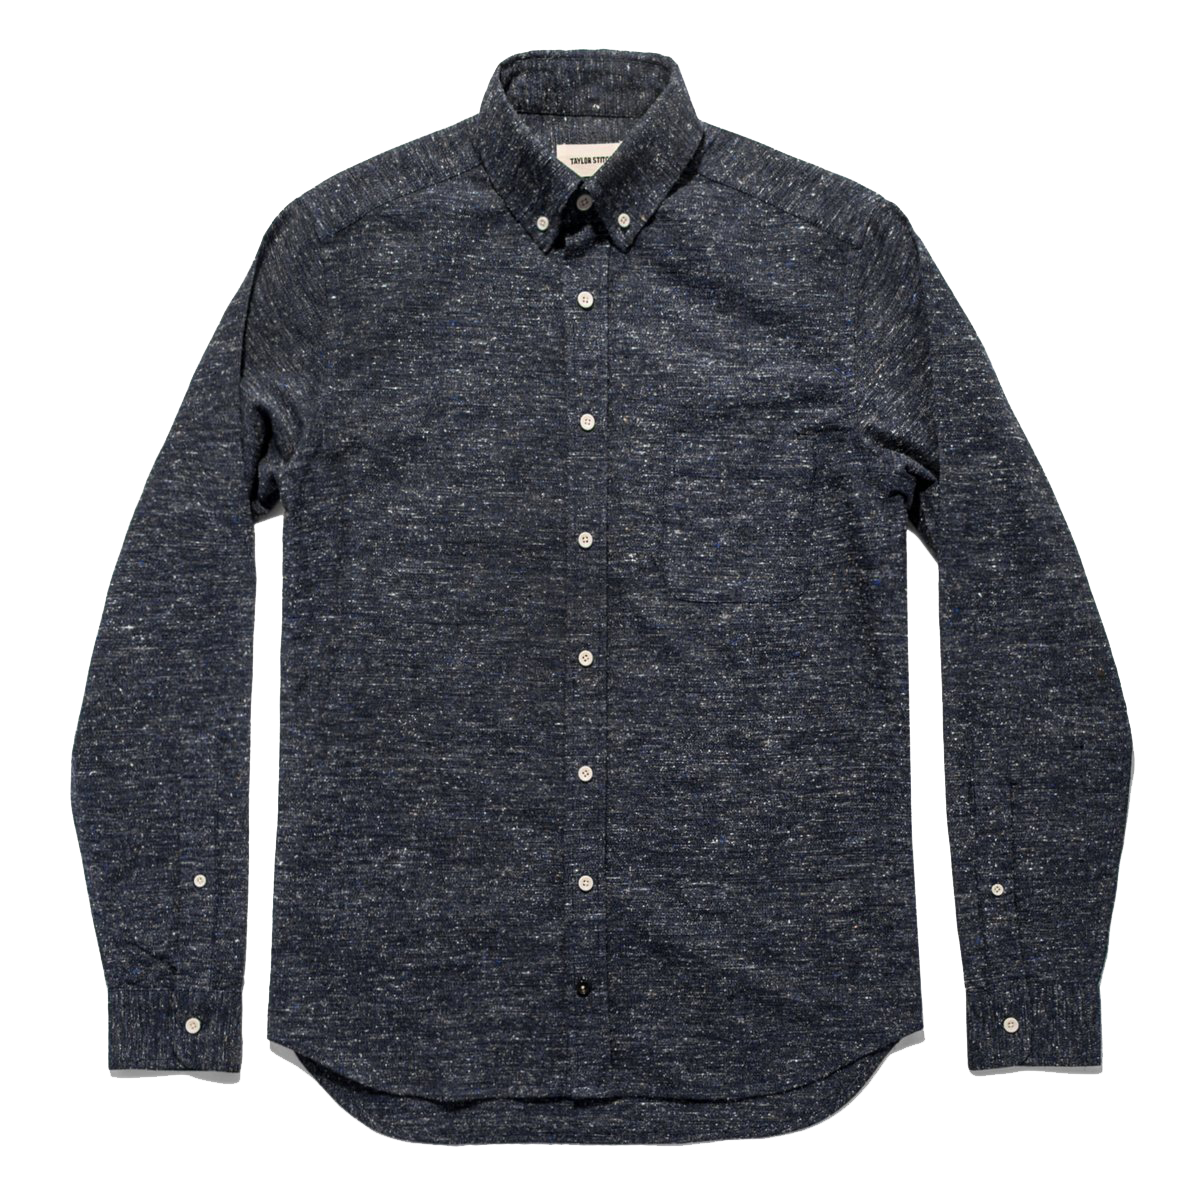 The L/S Jack - Navy Donegal